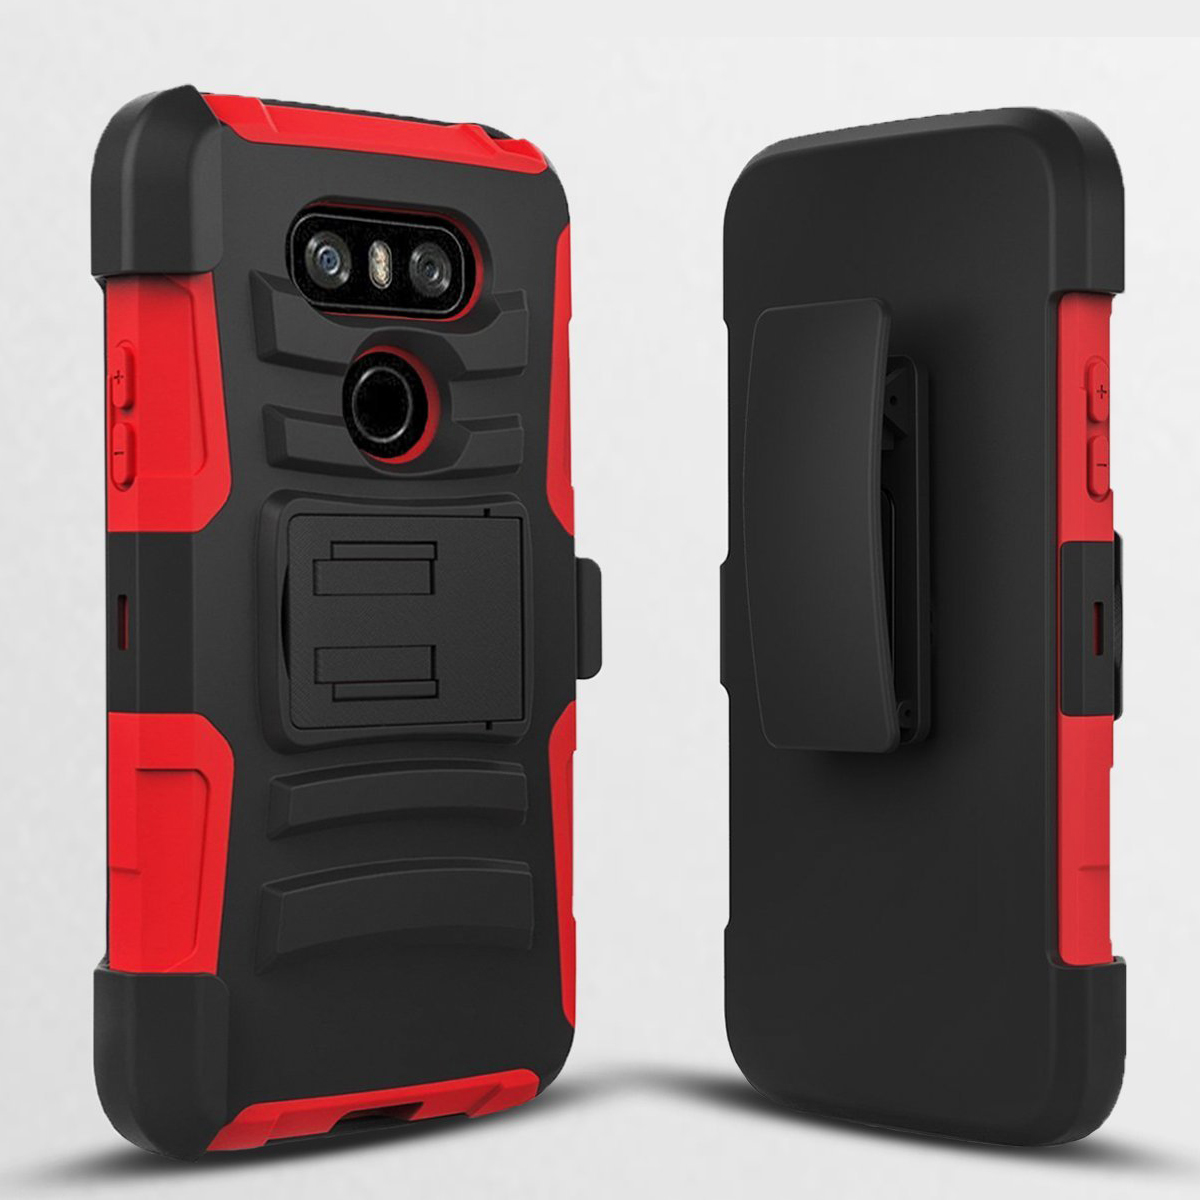 LG G6 Heavy Duty Case, Dual Layer Hard Case w/ Kickstand on [Red] Silicone Skin Case w/ Holster [Black/ Red] with Travel Wallet Phone Stand